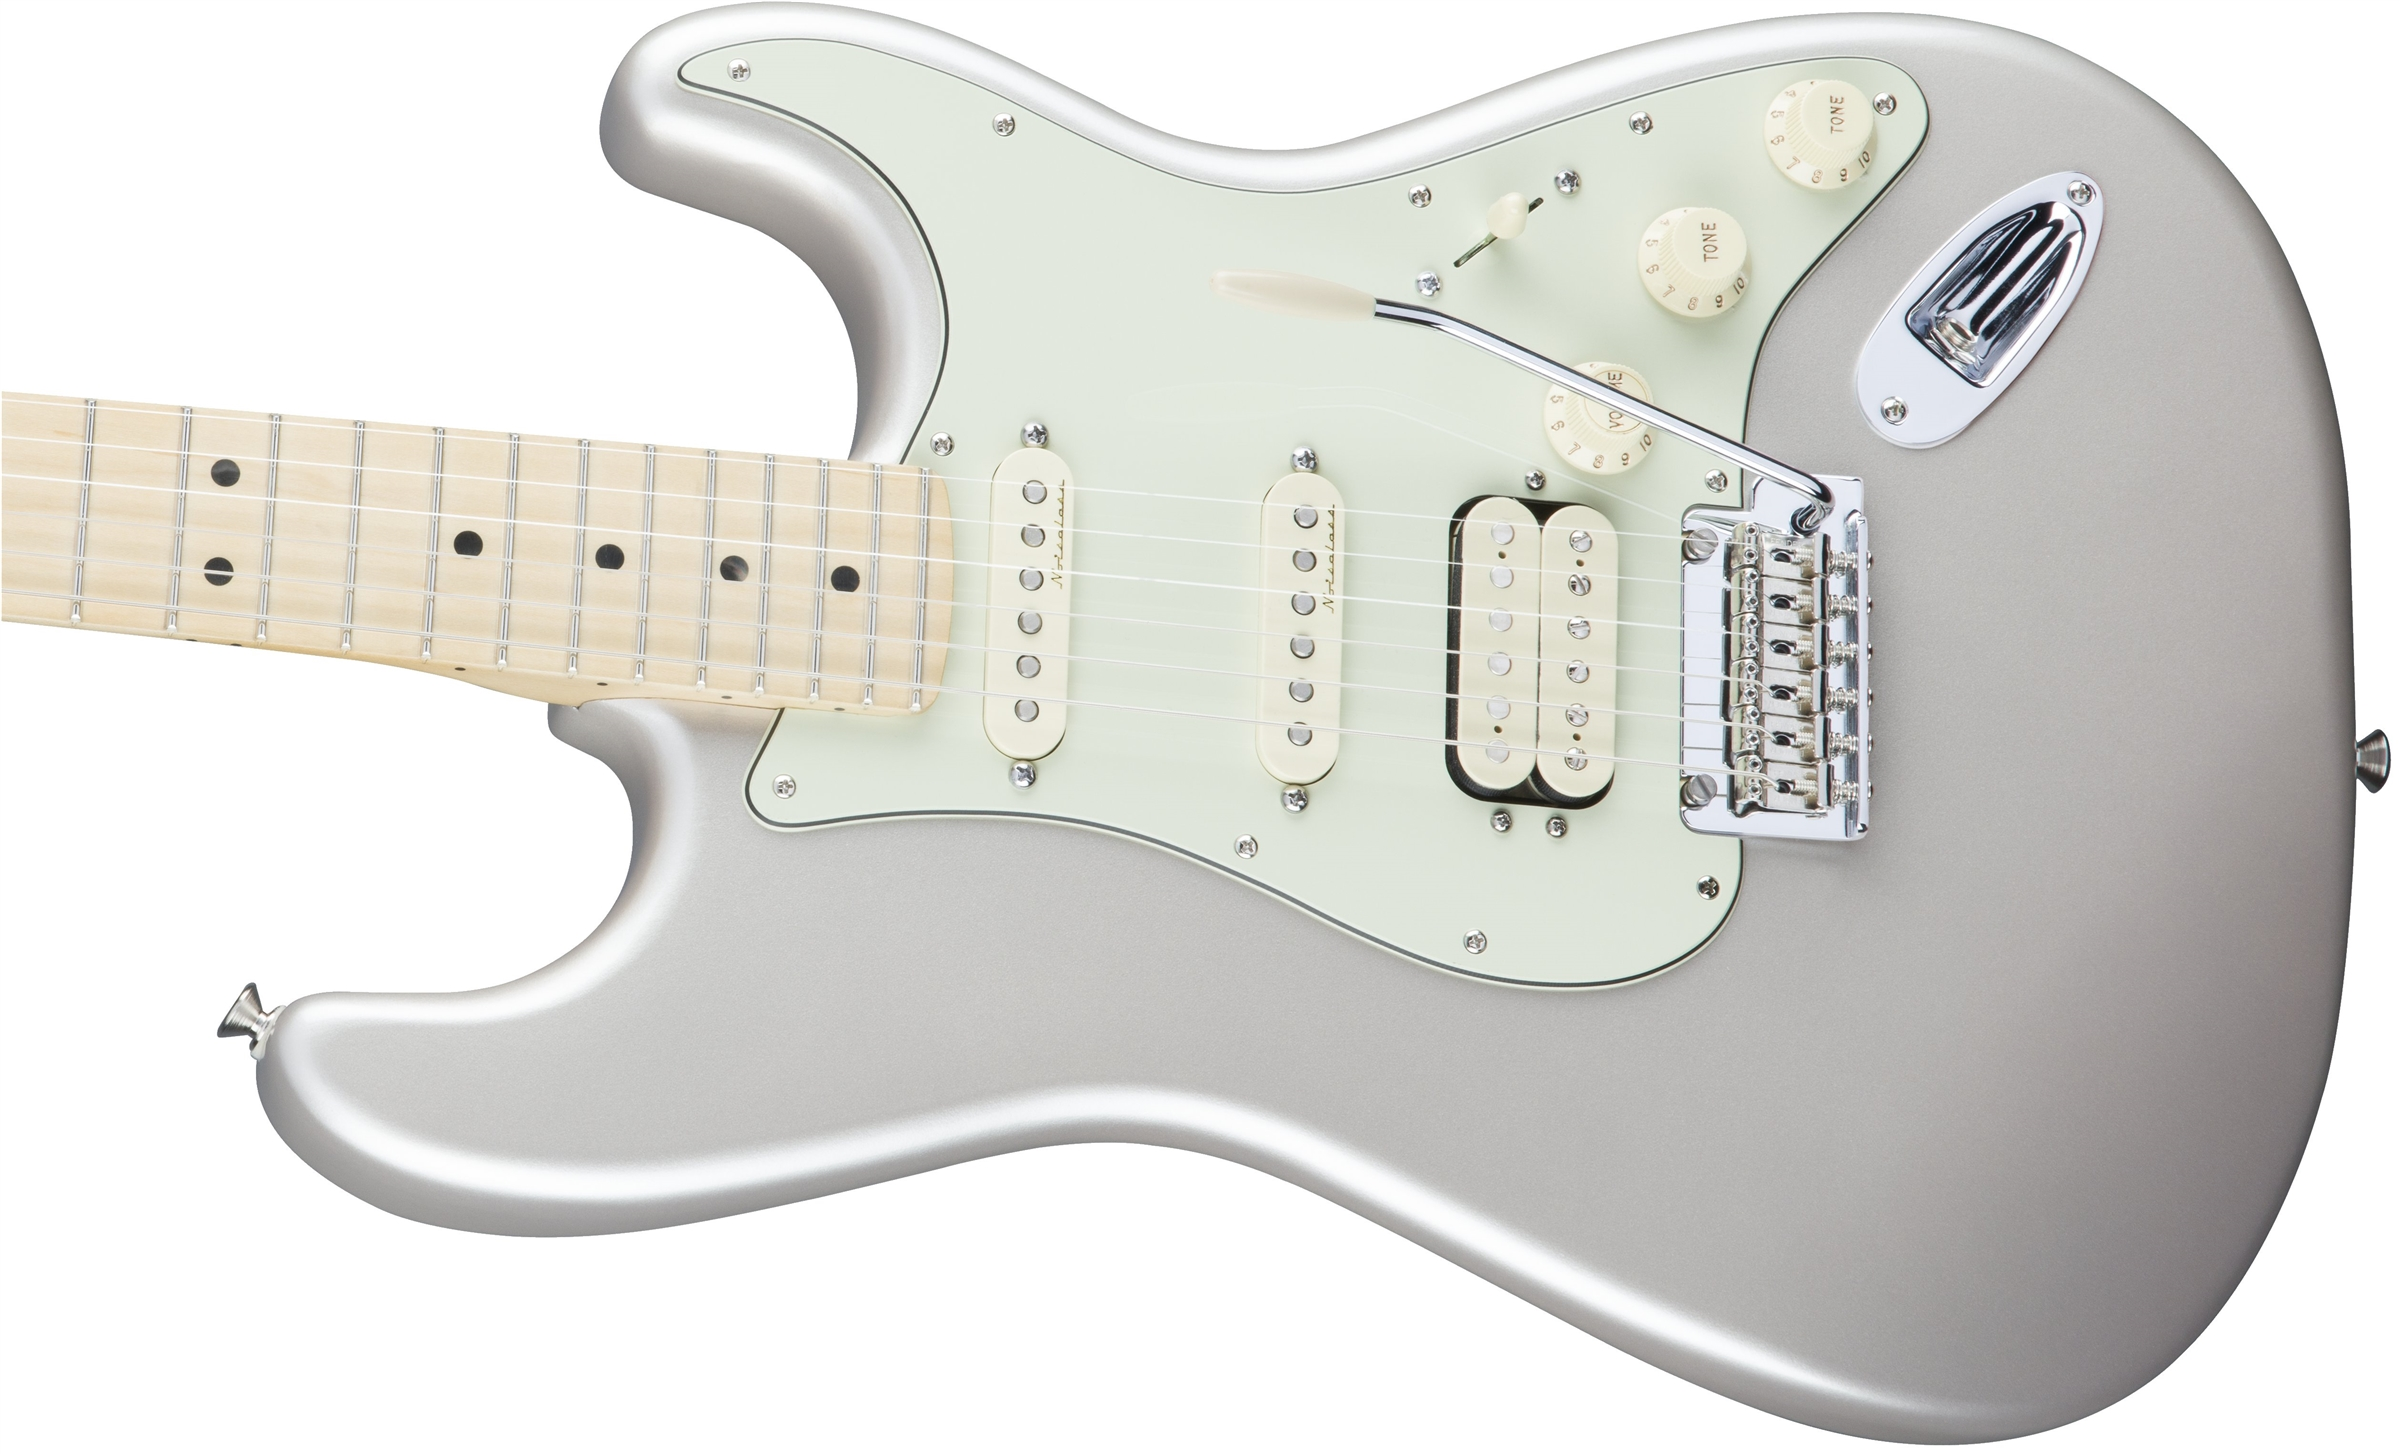 American Custom Stratocaster Tone Wiring Schematics Auto Hss Strat Diagram Single Fender Noiseless Rickenbacker